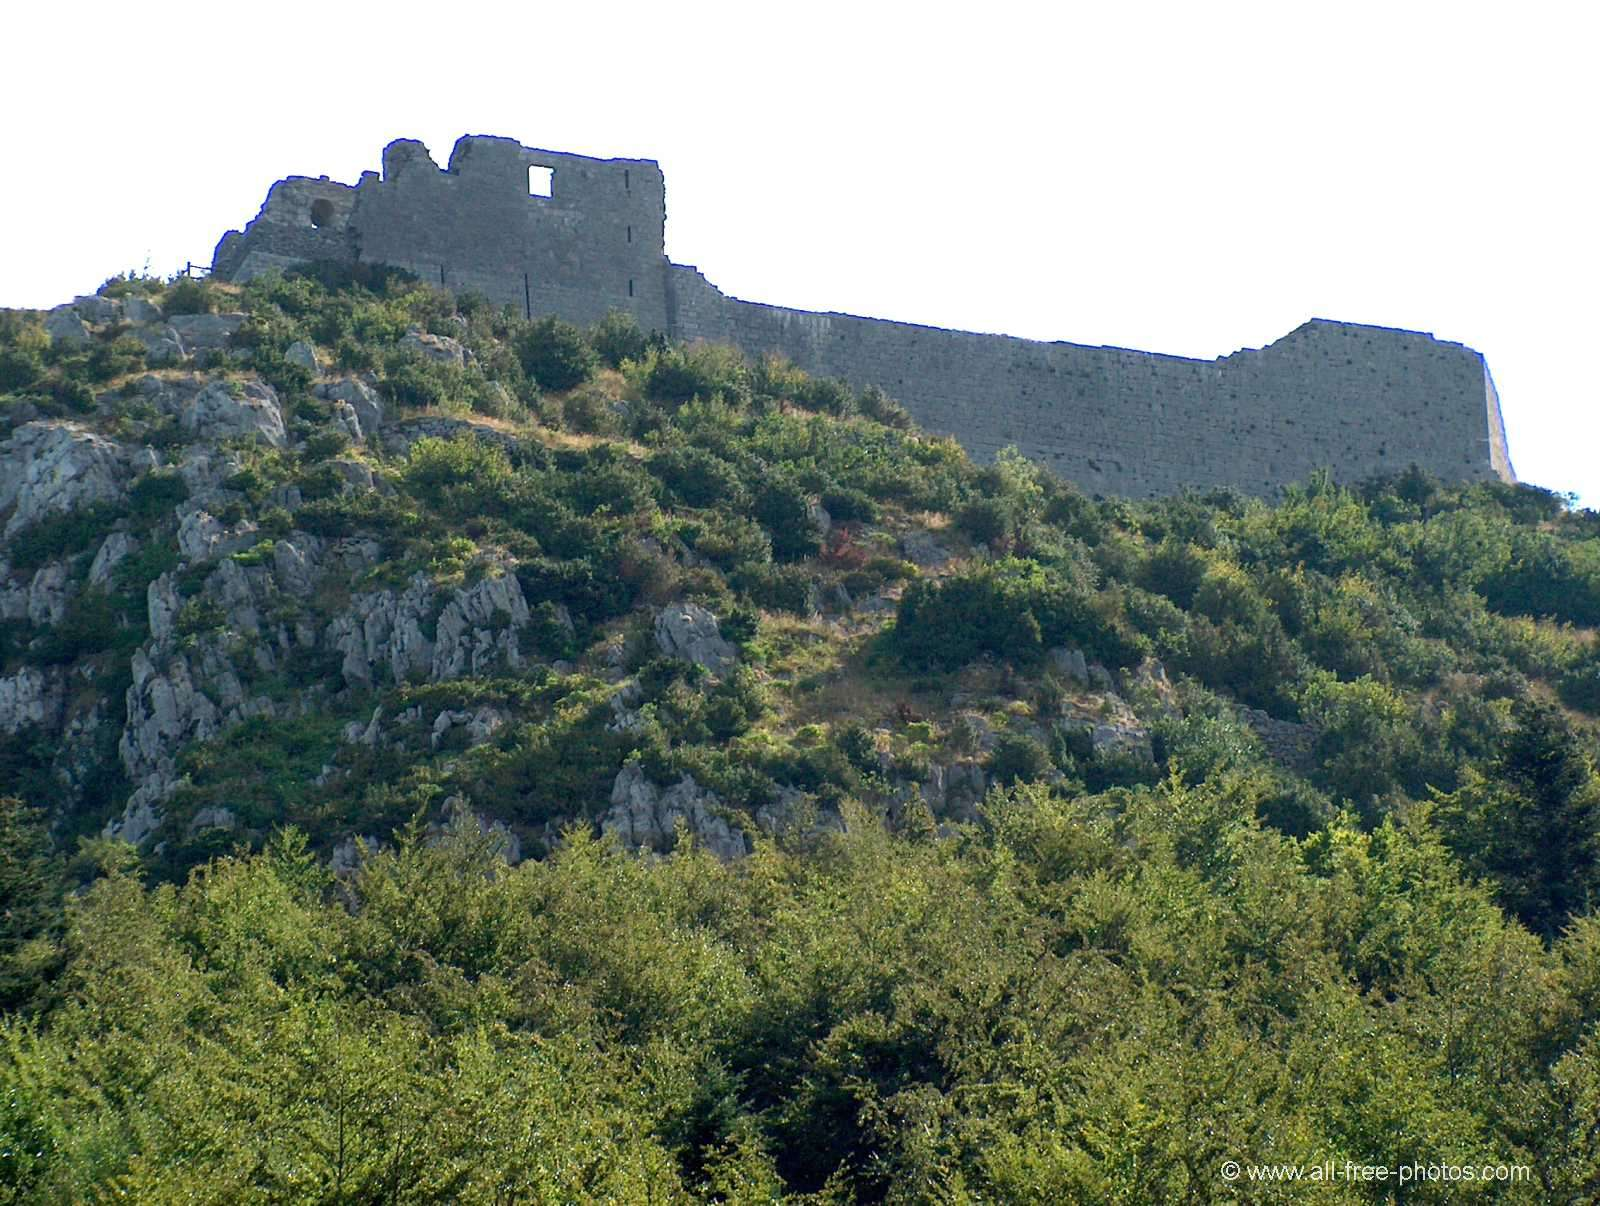 Home Galleries Castles and palaces Cathar castles Castle of Monts  gur